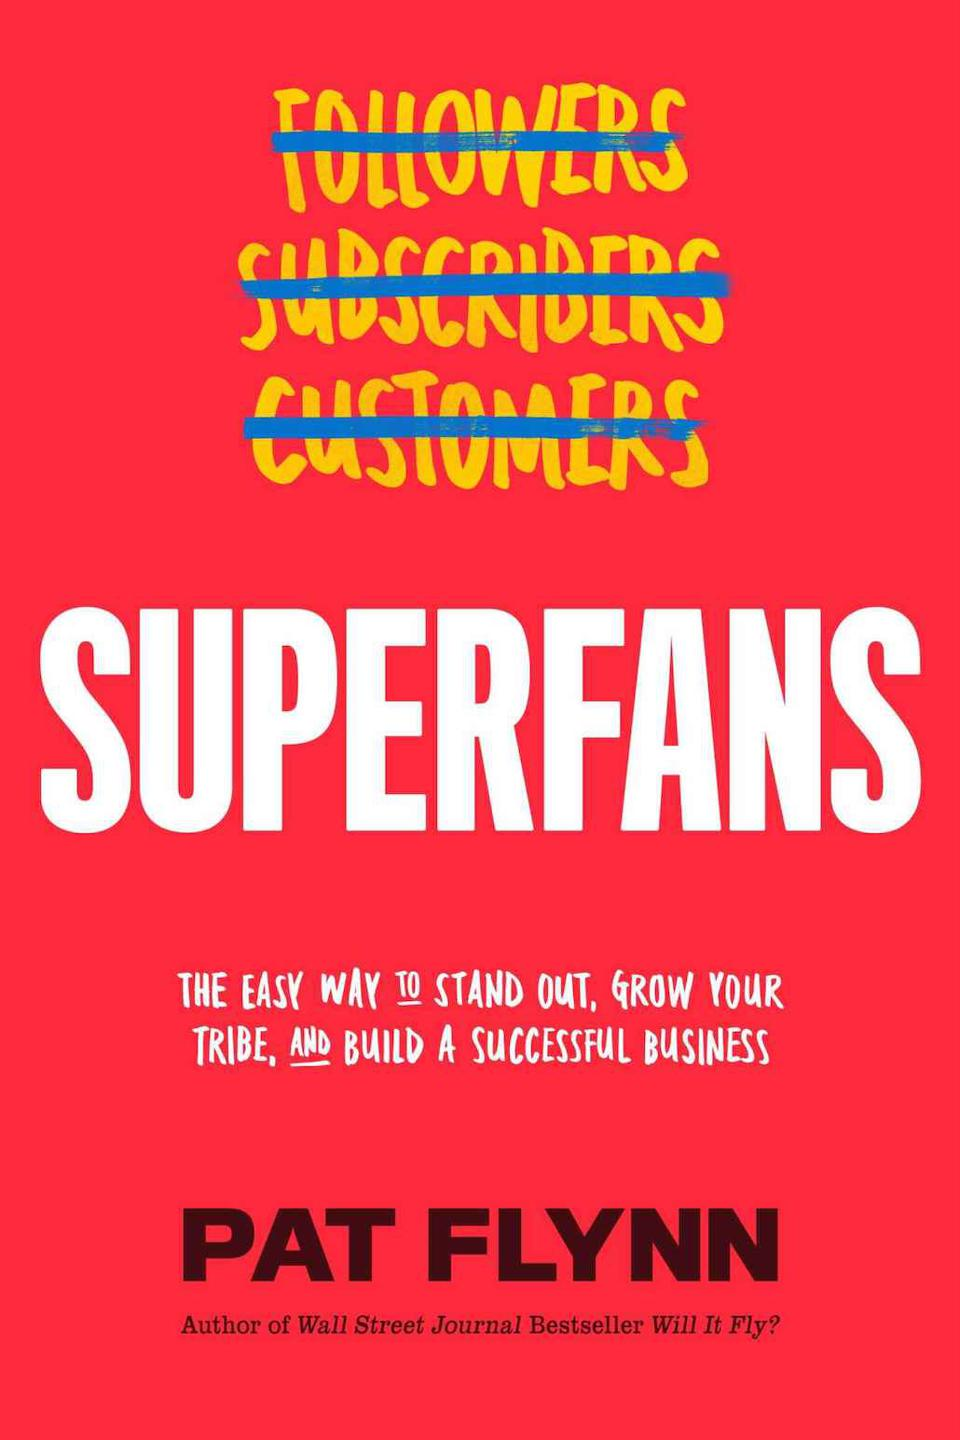 Superfans: The Easy Way to Stand Out, Grow Your Tribe, and Build a Successful Business by Pat Flynn